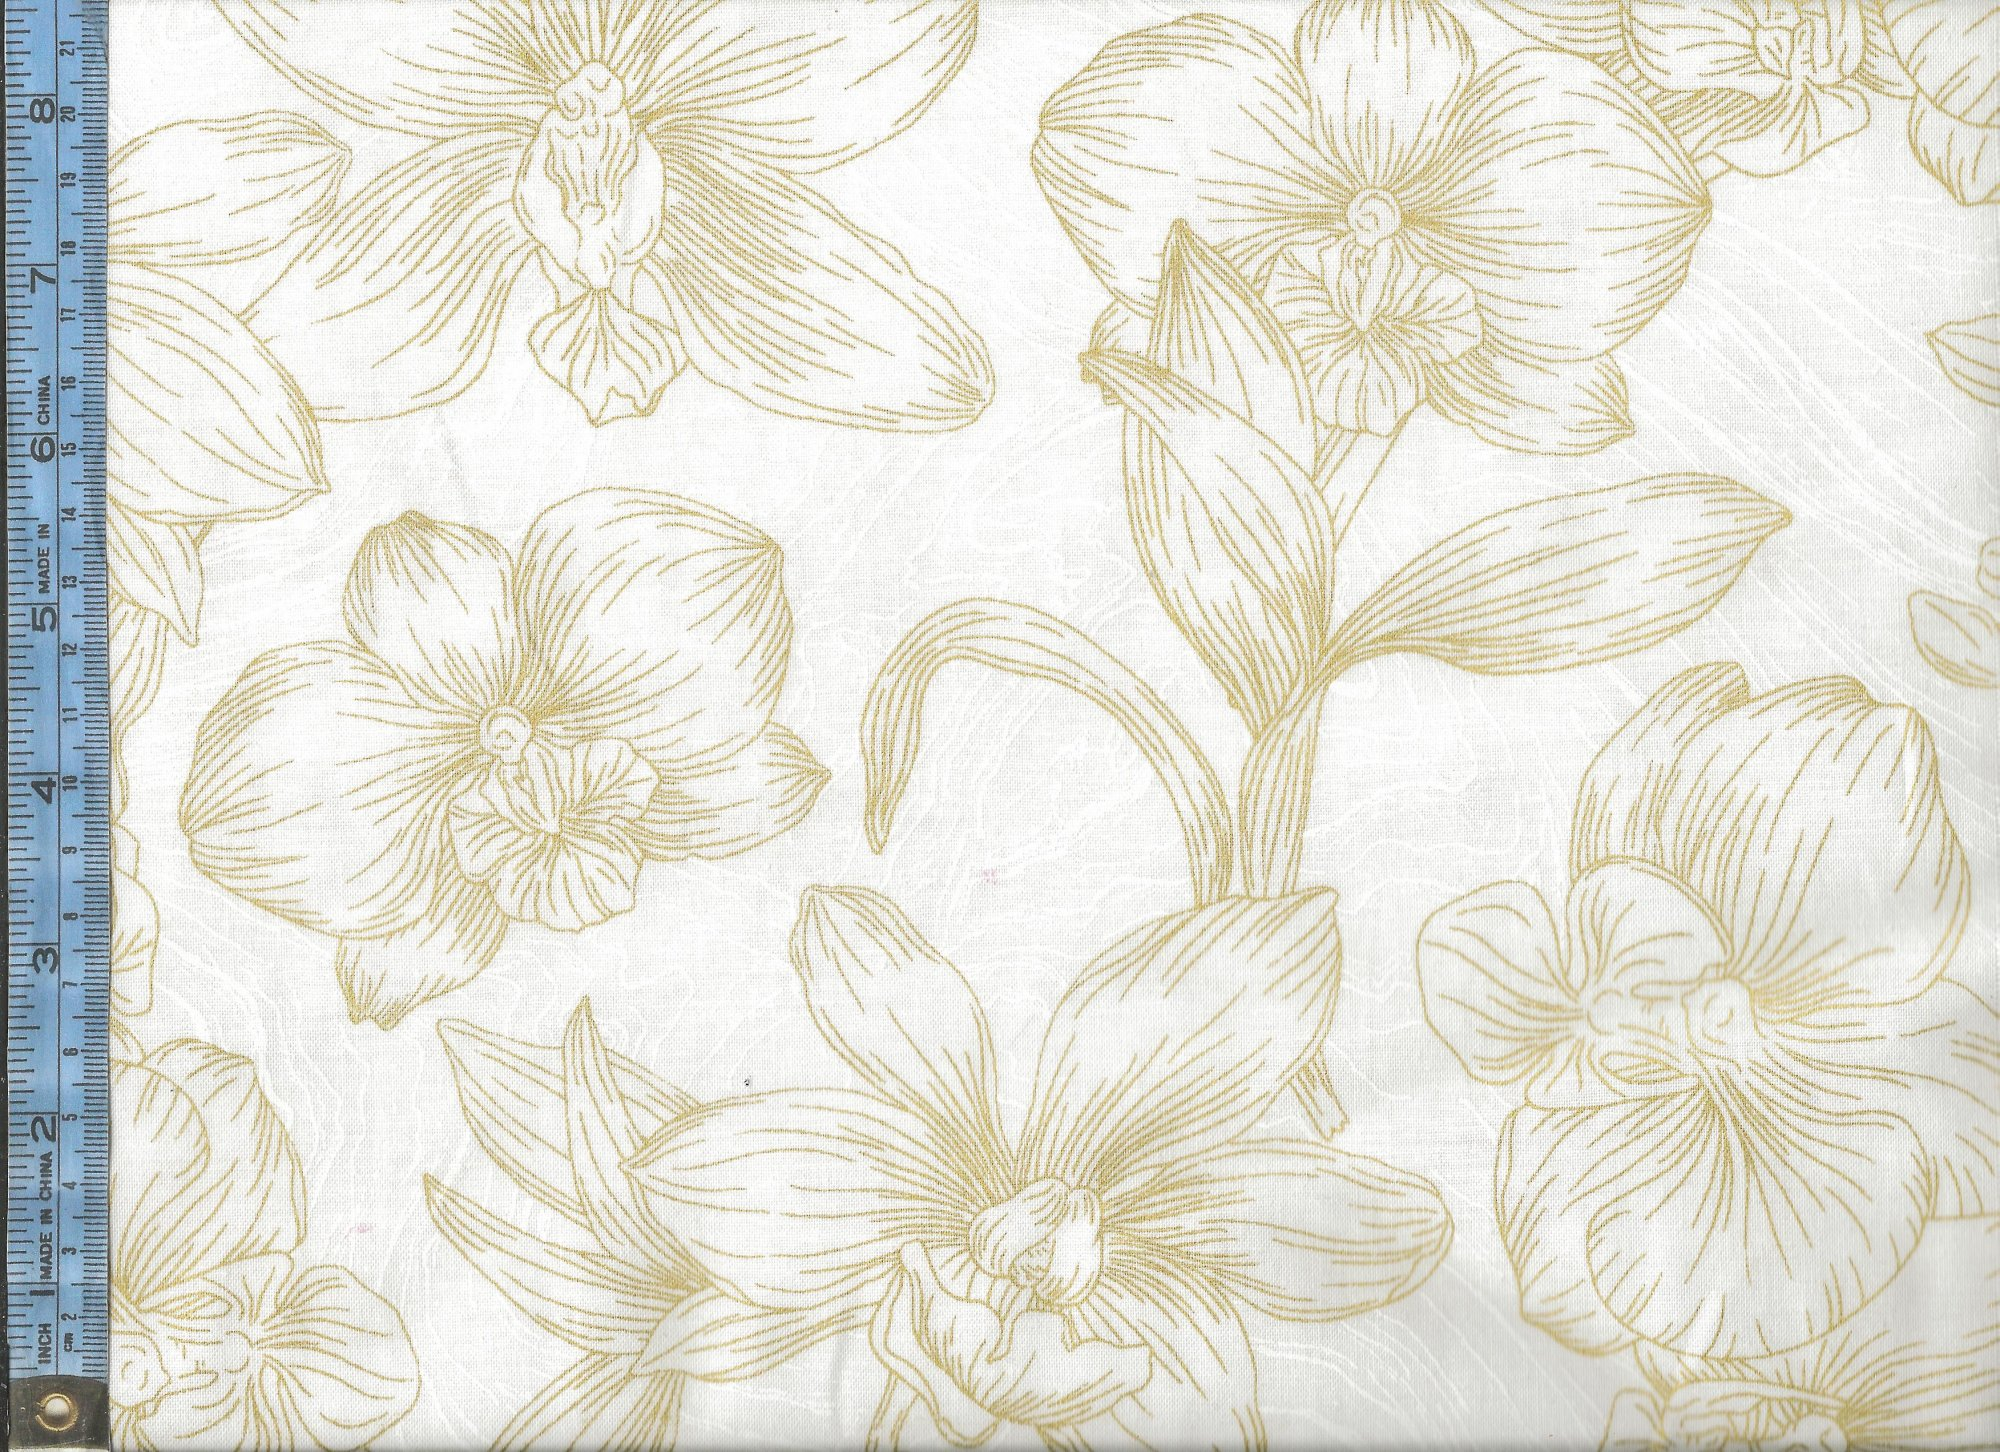 Artisan Spirit - Sandscapes Orchids - (21529M-10-white) metallic gold outlined orchids on white textured background